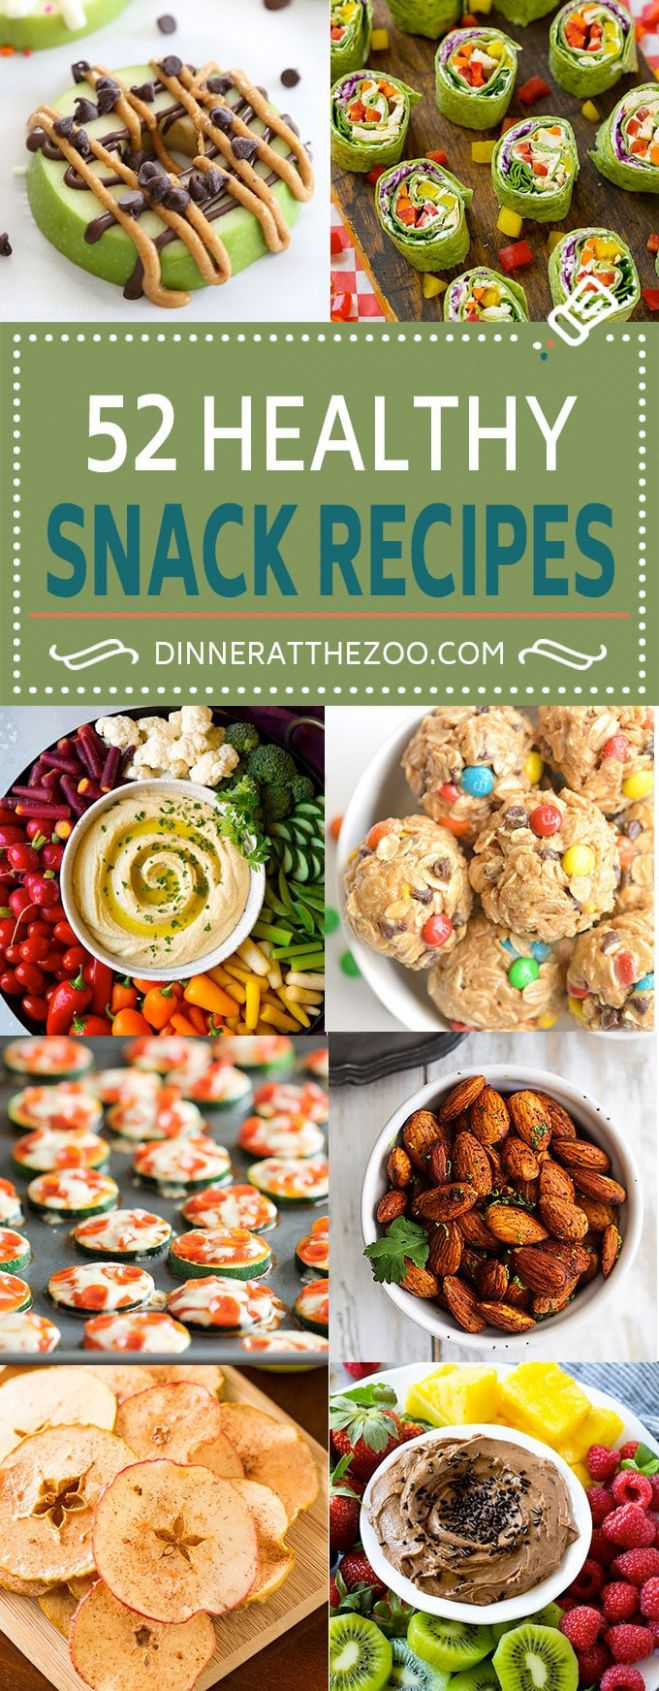 10 Healthy Snack Recipes - Dinner at the Zoo - Healthy Recipes Snacks